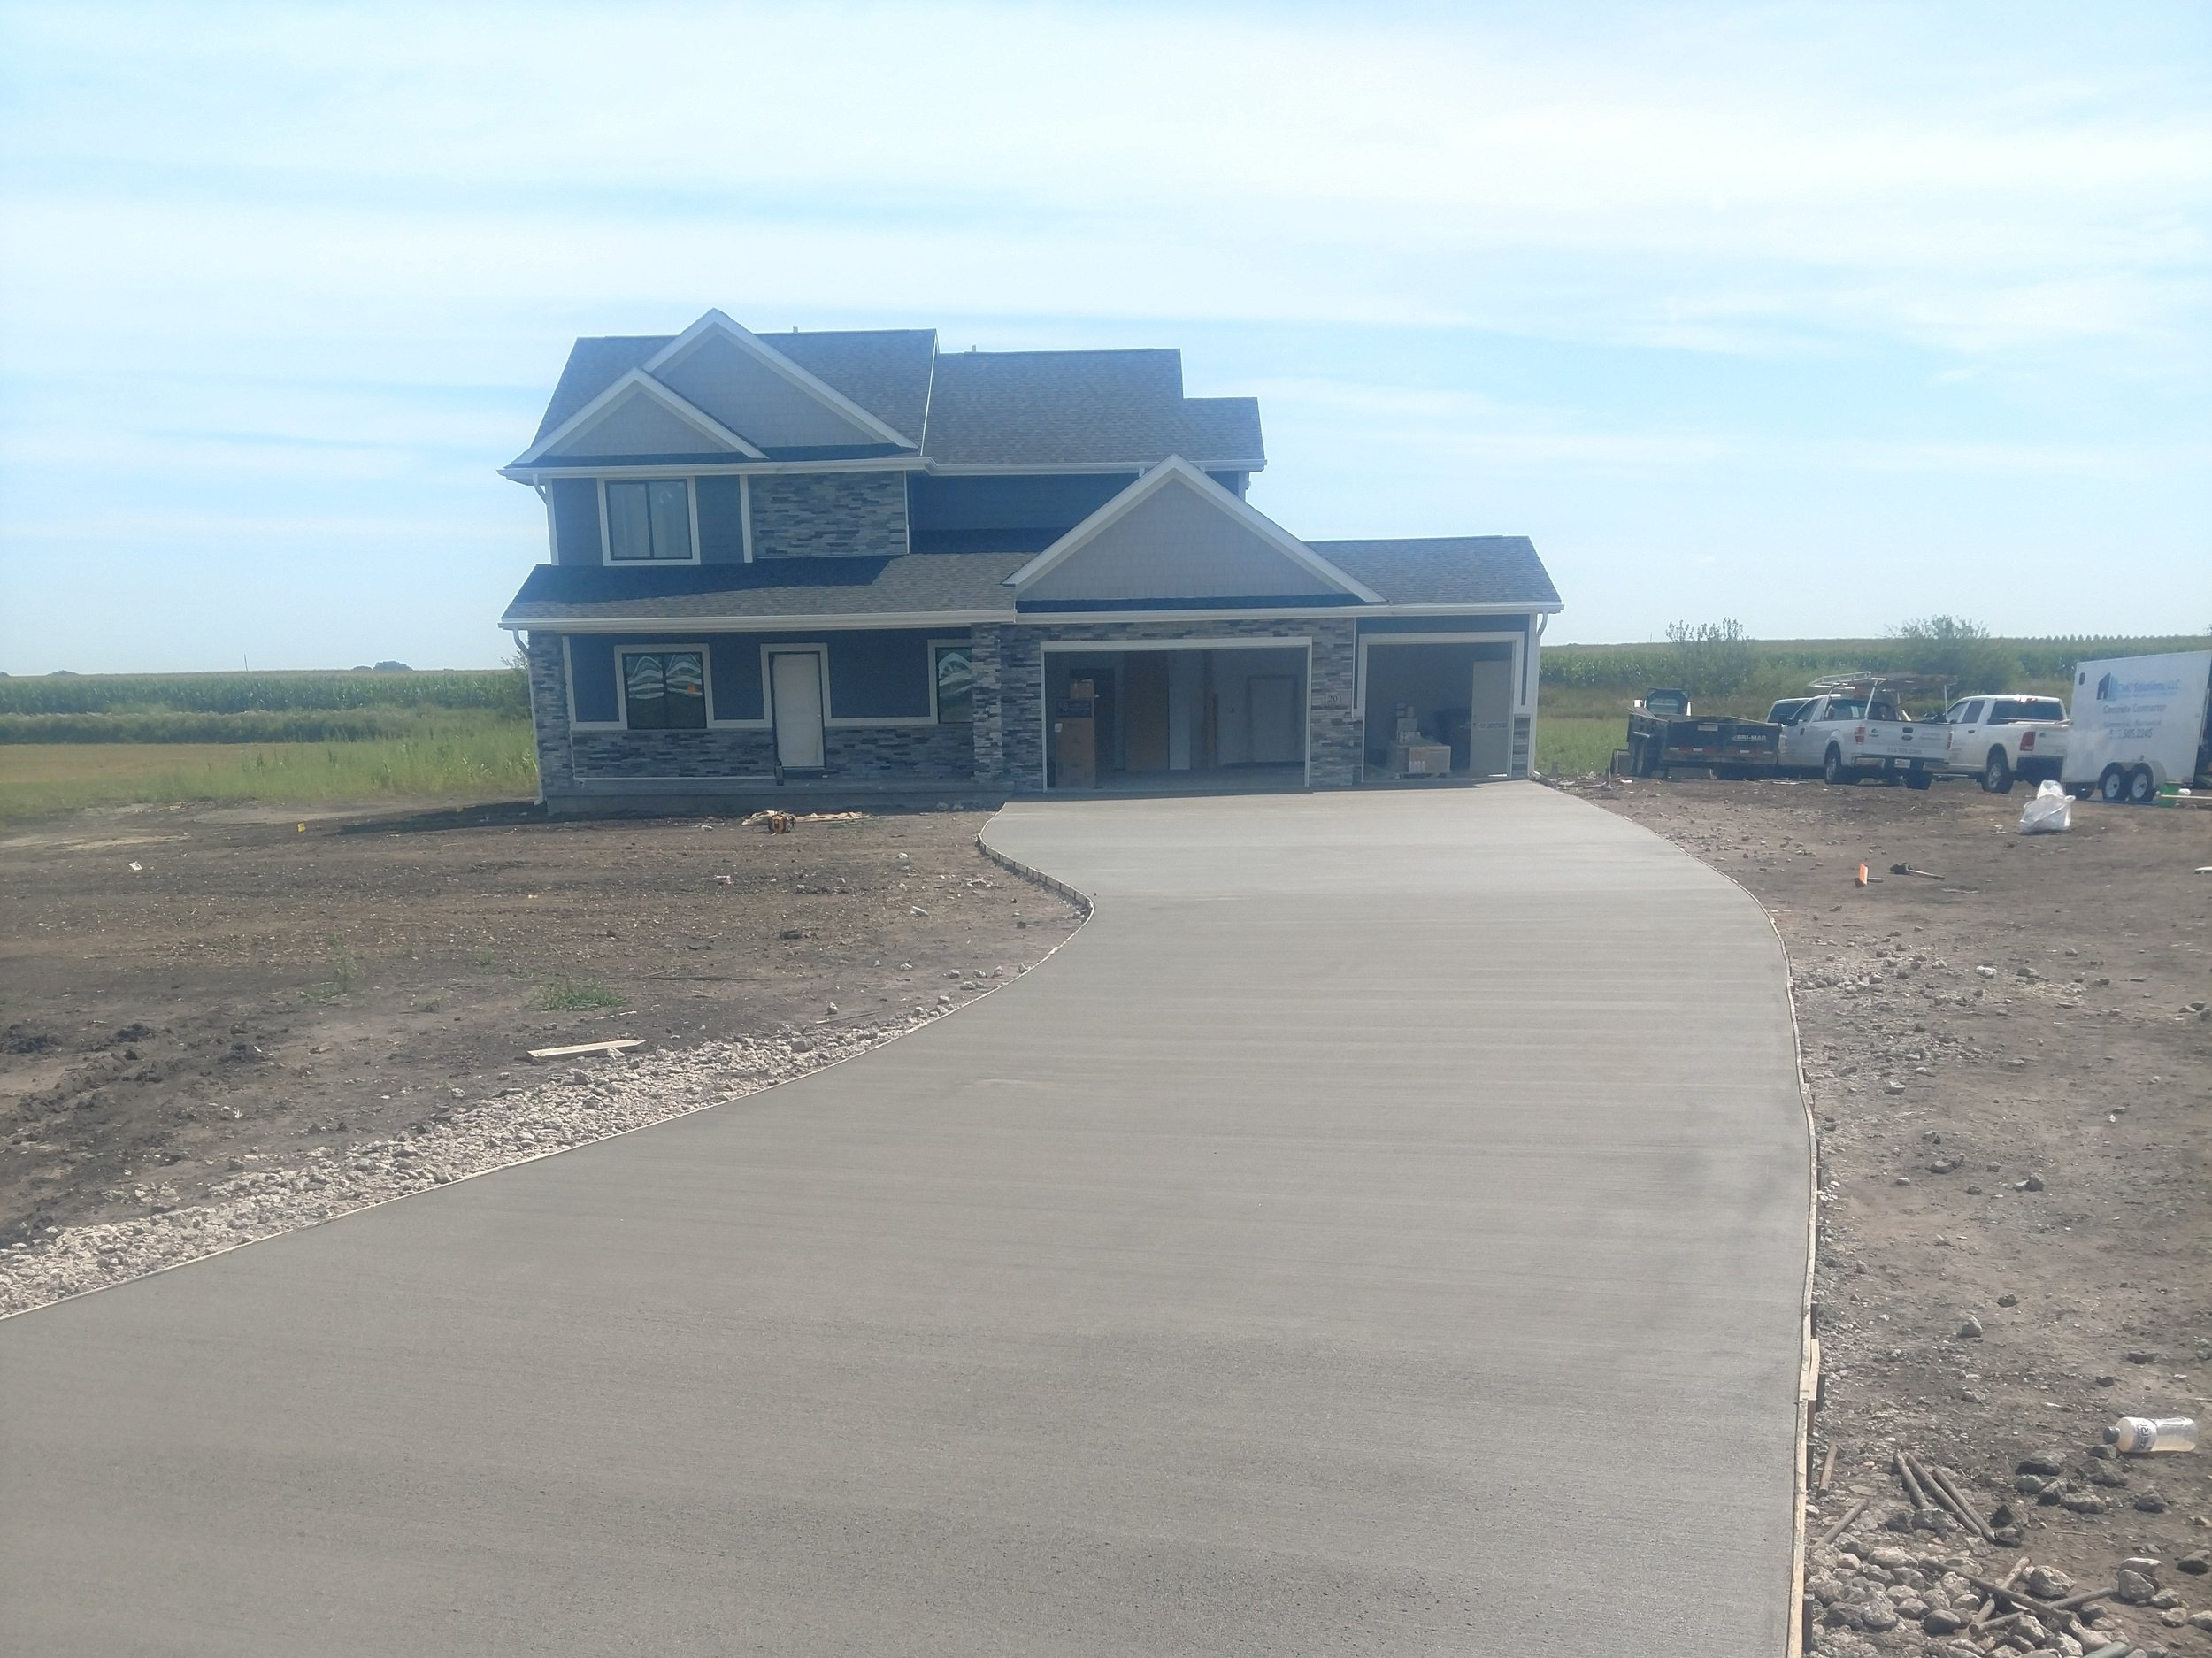 Residential Concrete - Whether your home improvement project requires drainage fixes, concrete crack fills, parking capacity issues, or a new patio installation; our team is trained to design custom solutions that will add value to your home.